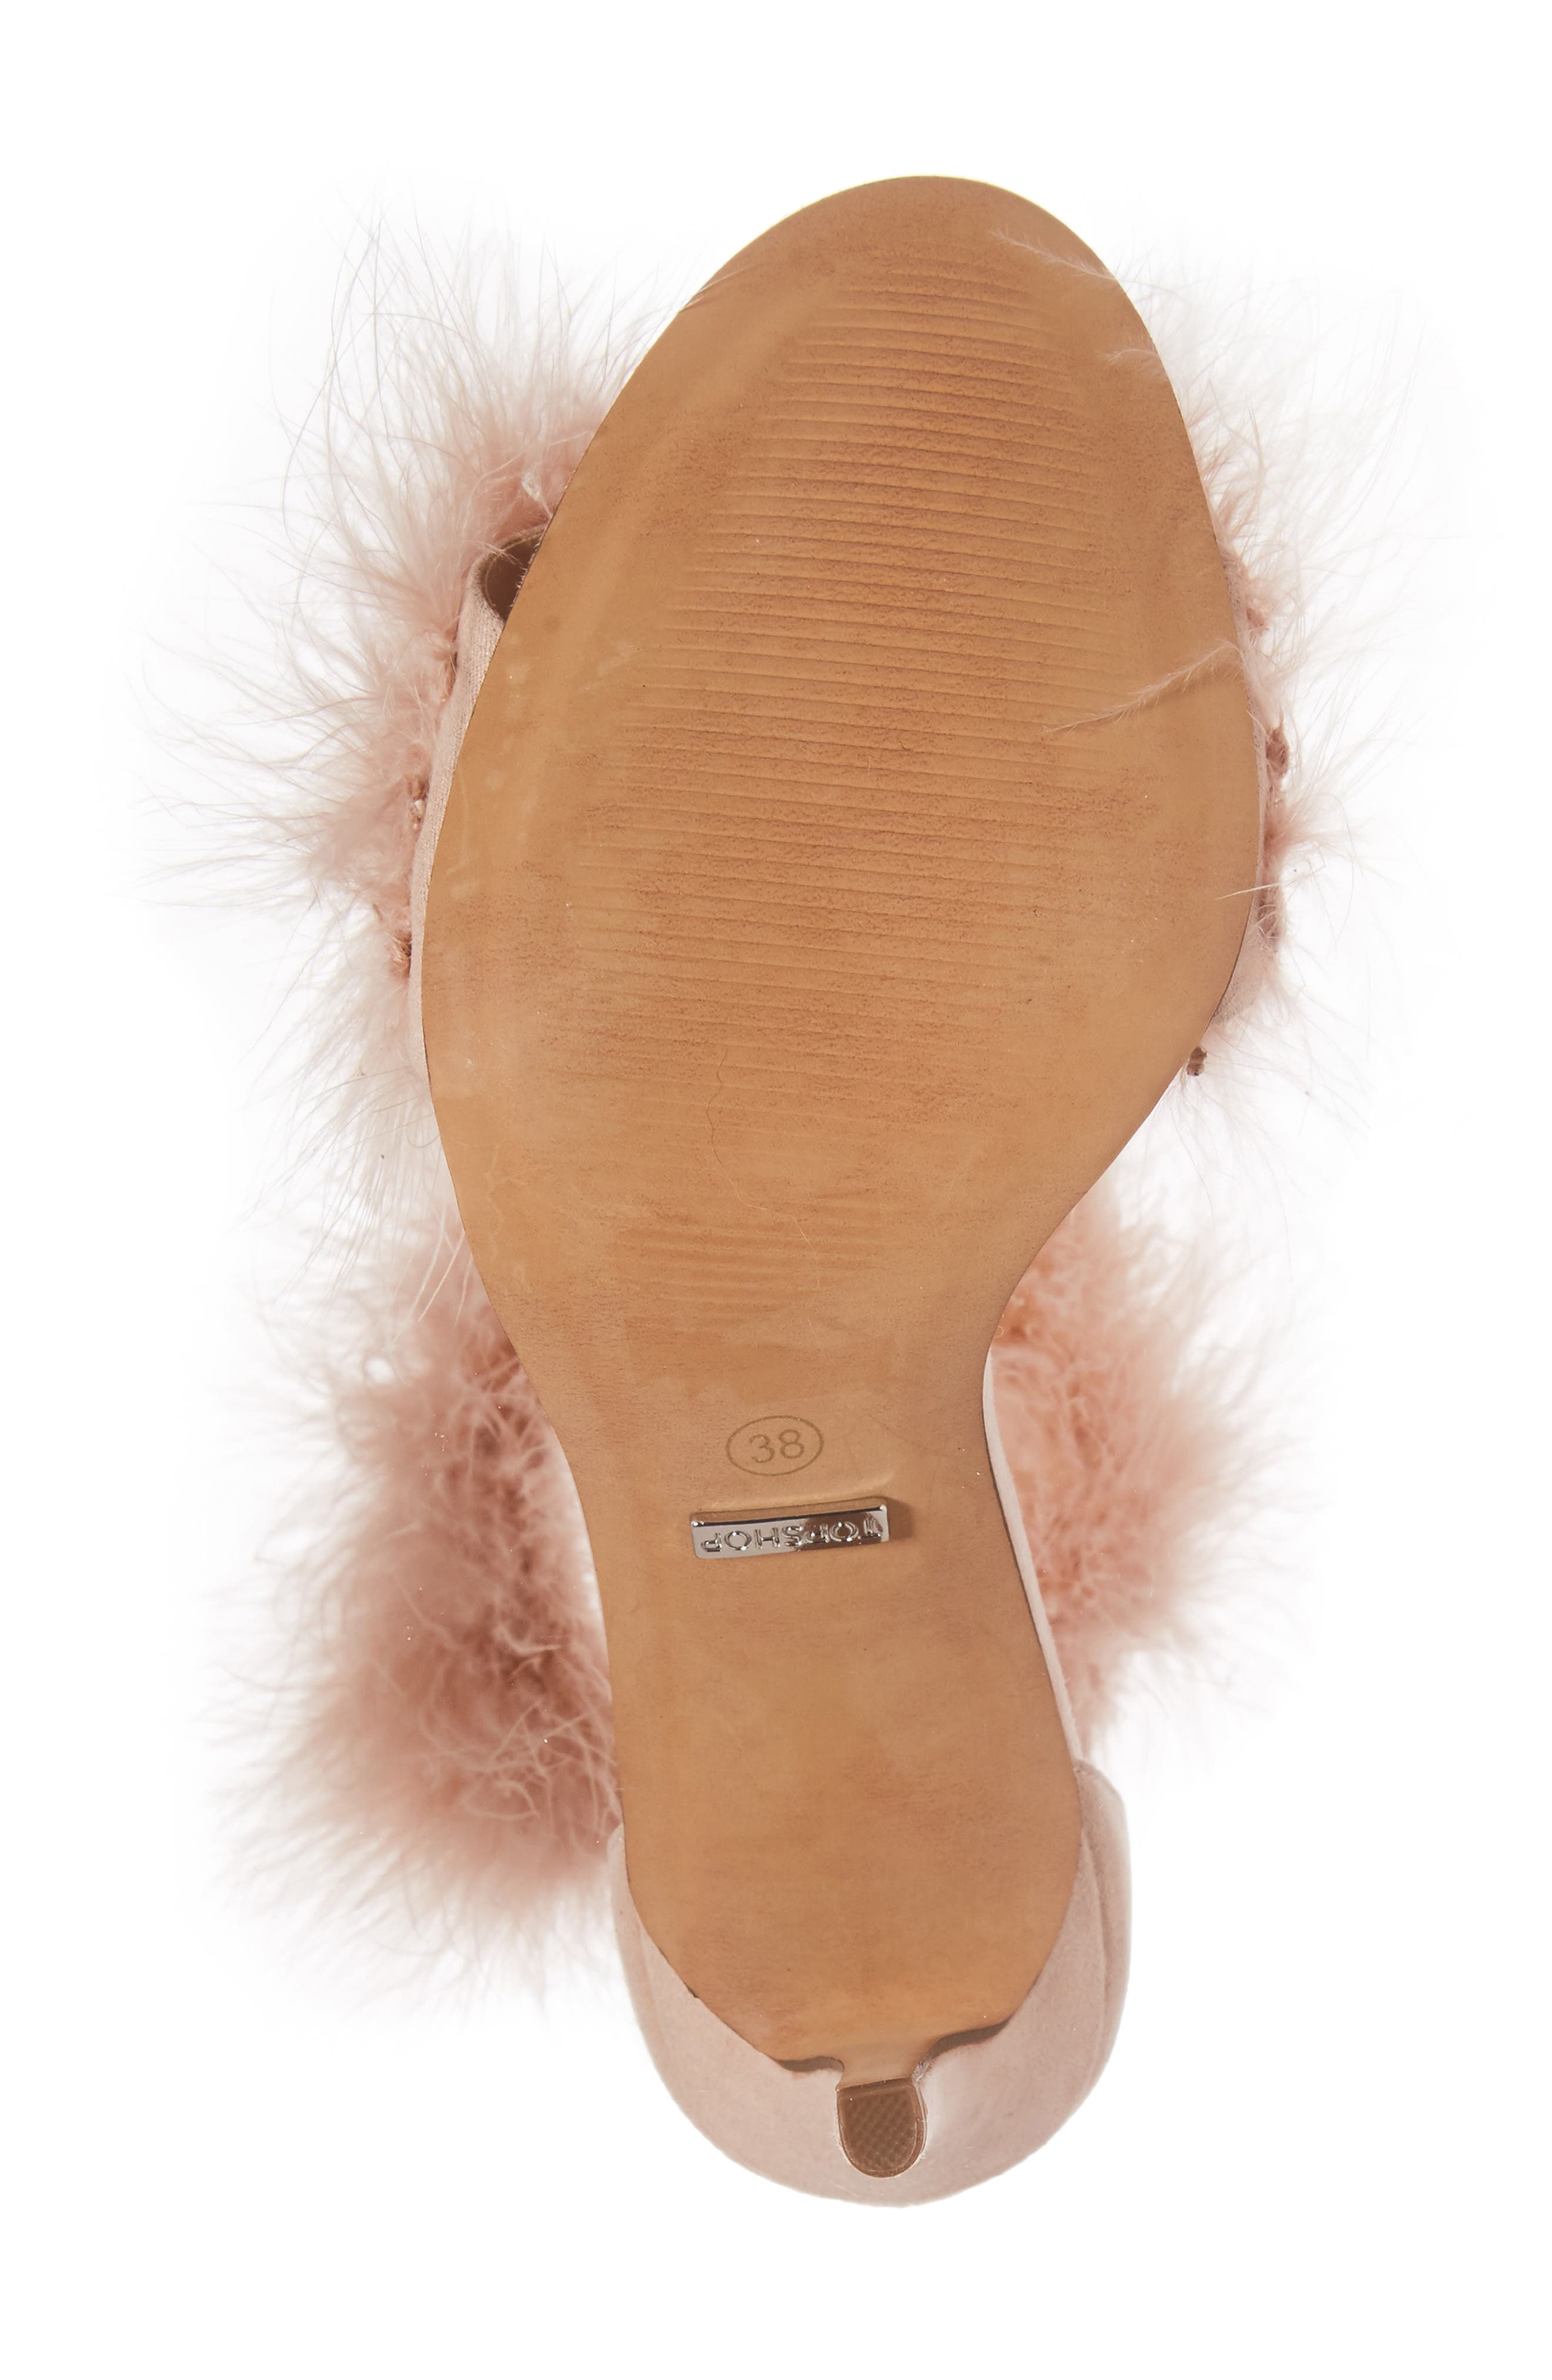 Feather Strap Sandal,                             Alternate thumbnail 6, color,                             Nude